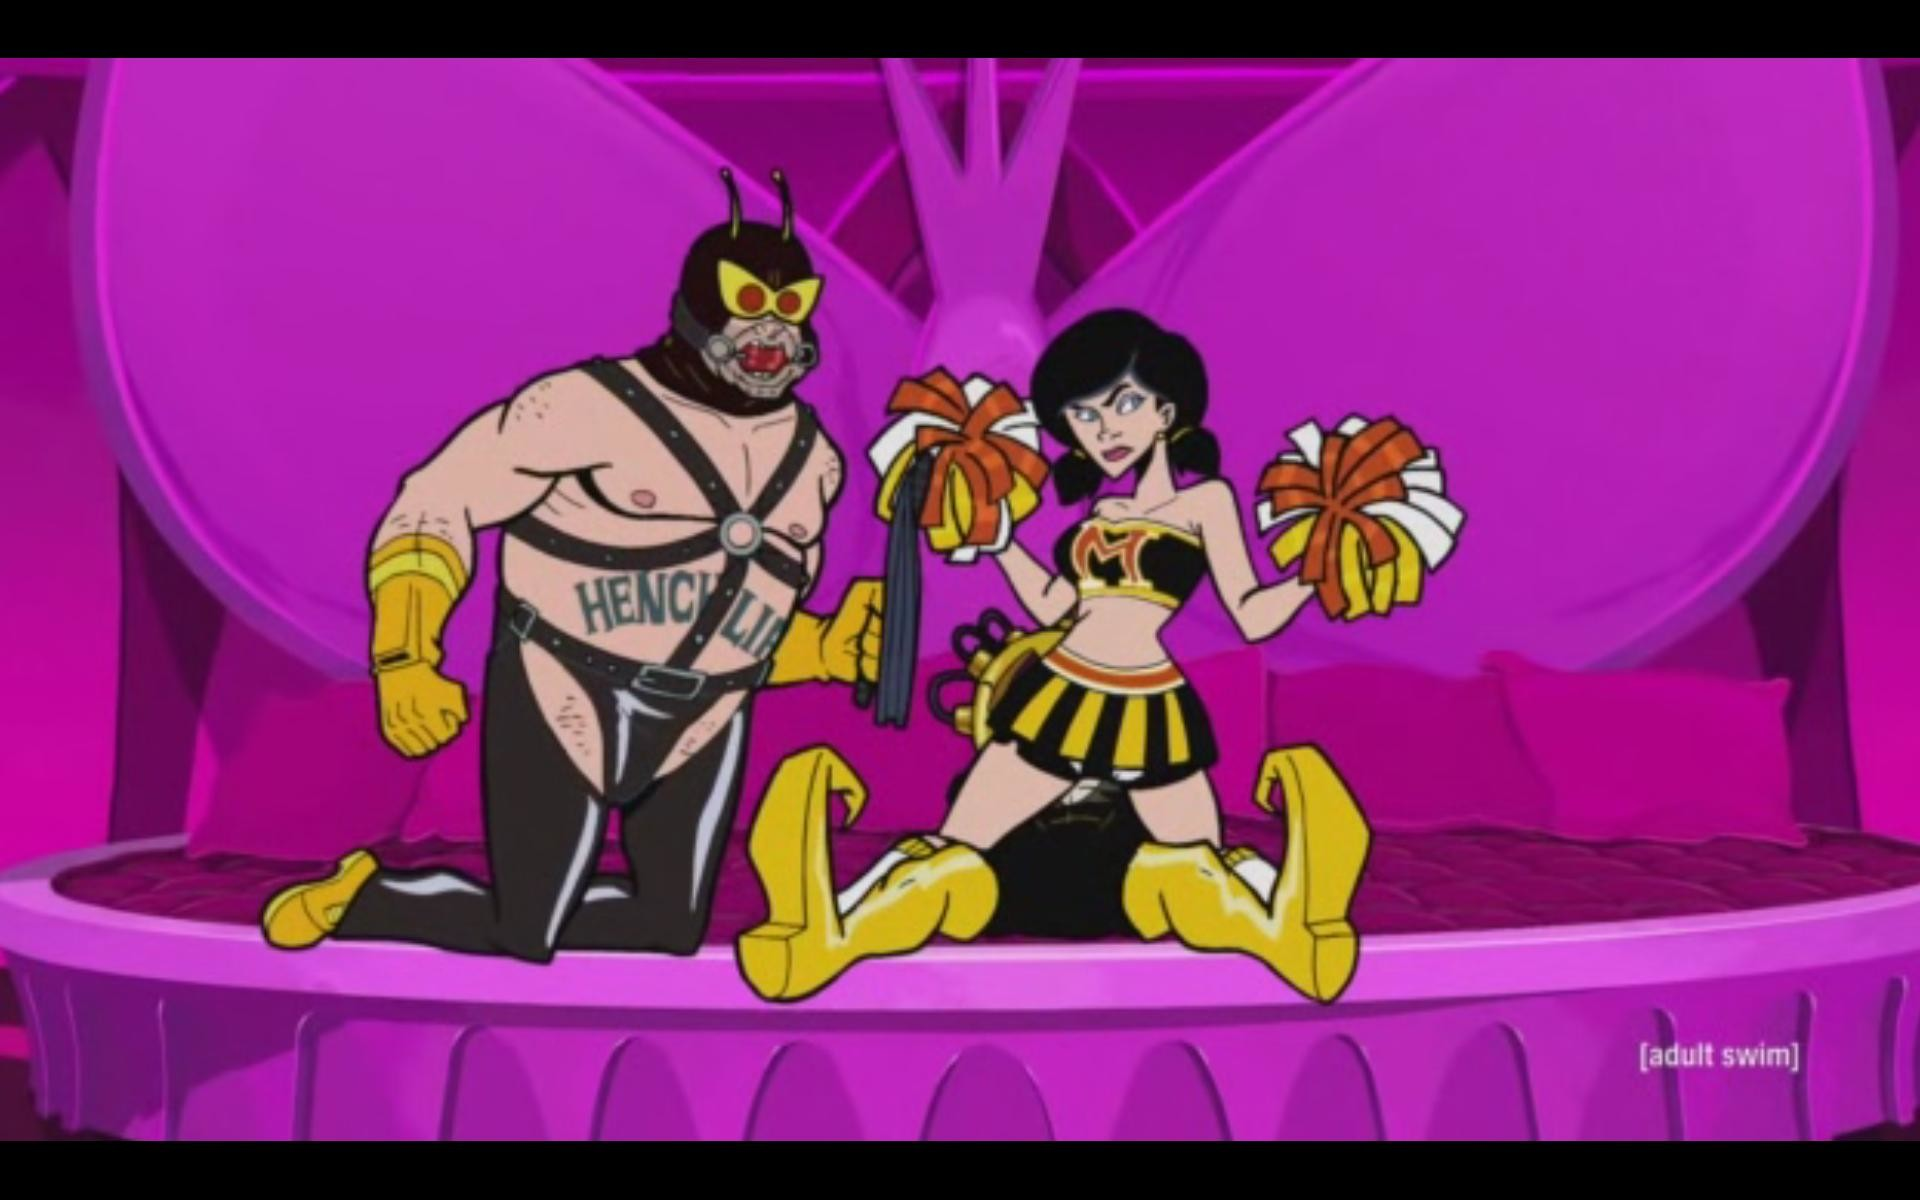 1920x1200 Brought to you be Venture Bros season 4 episode 14 [SPOILERS?]